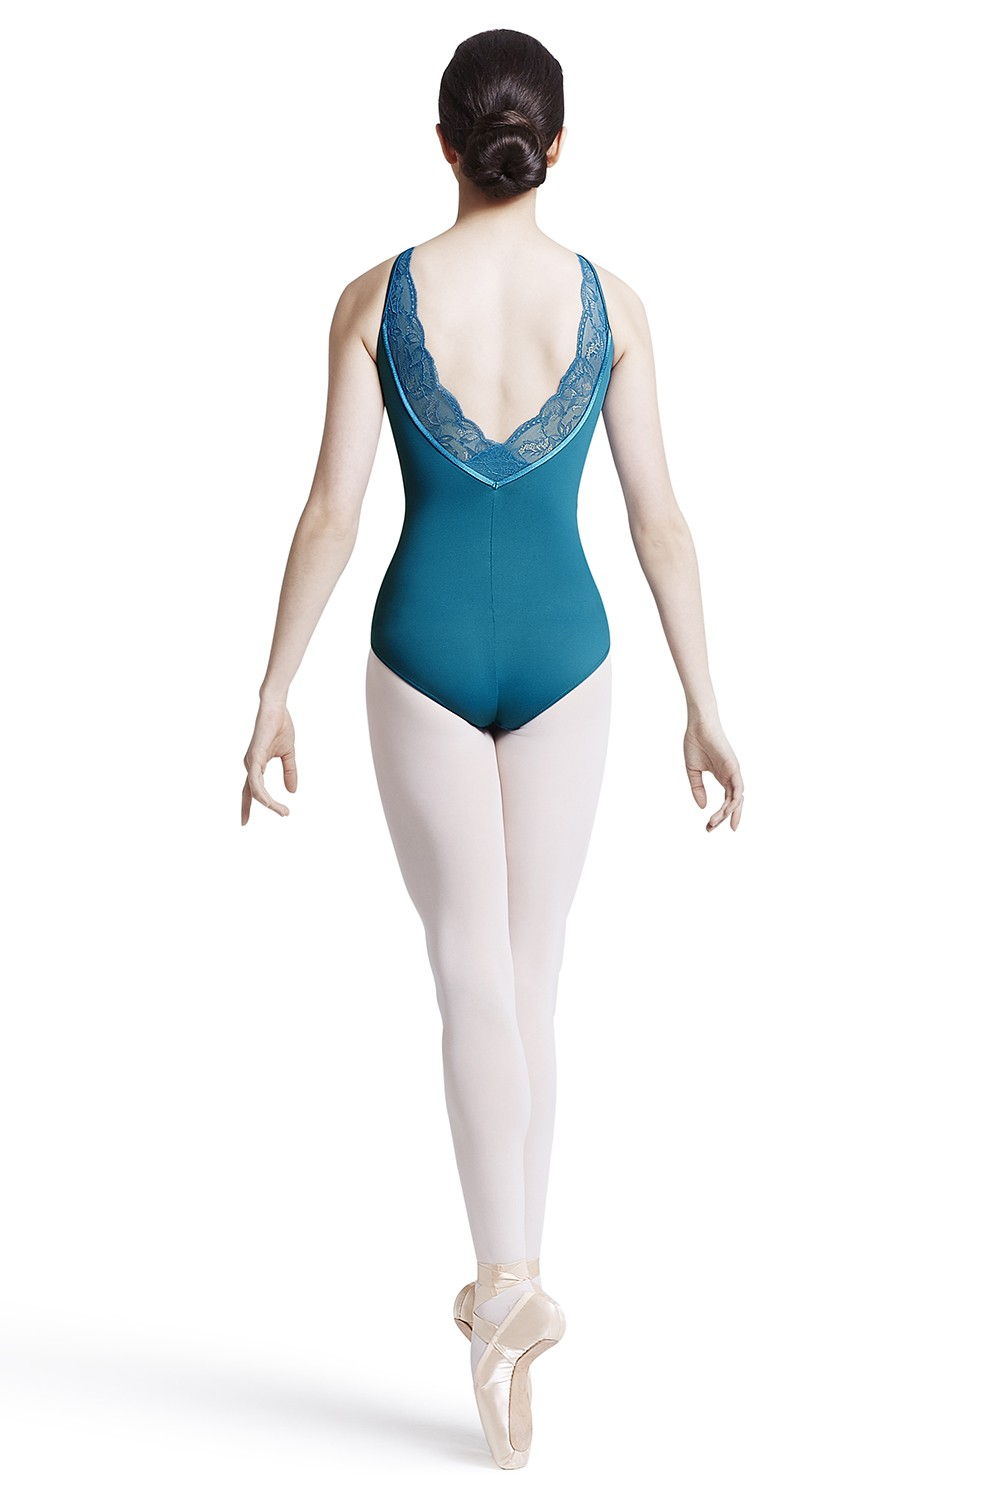 Body A Spalline Sottili Con Scollo Profondo Sul Retro Womens Tank Leotards